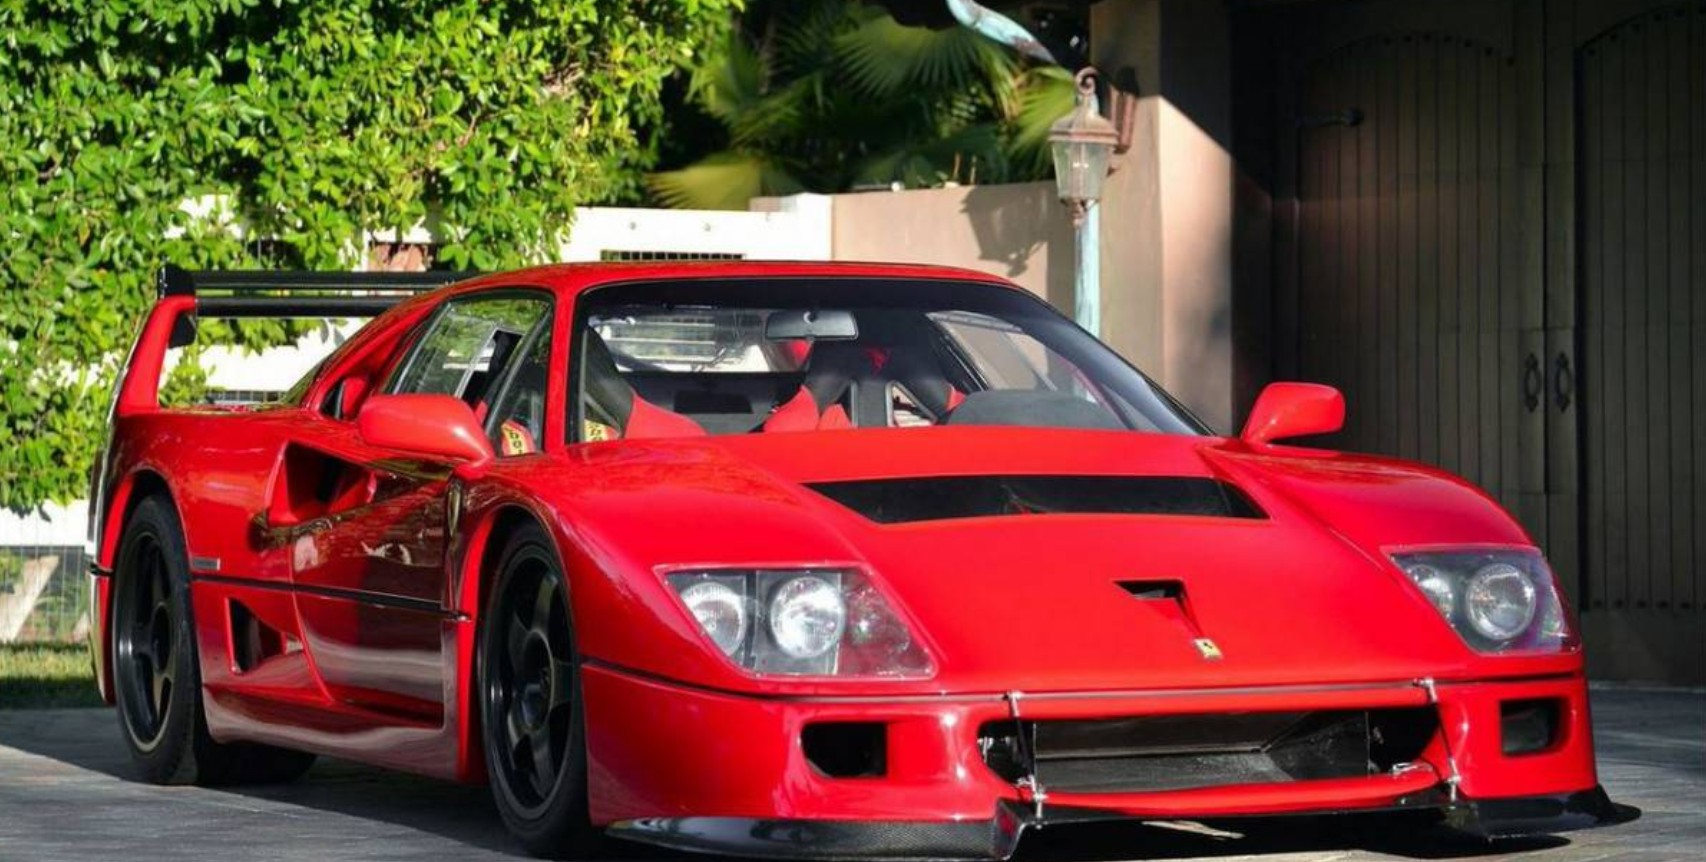 converted ferrari f40 lm mixes racing dreams with street legal reality. Black Bedroom Furniture Sets. Home Design Ideas